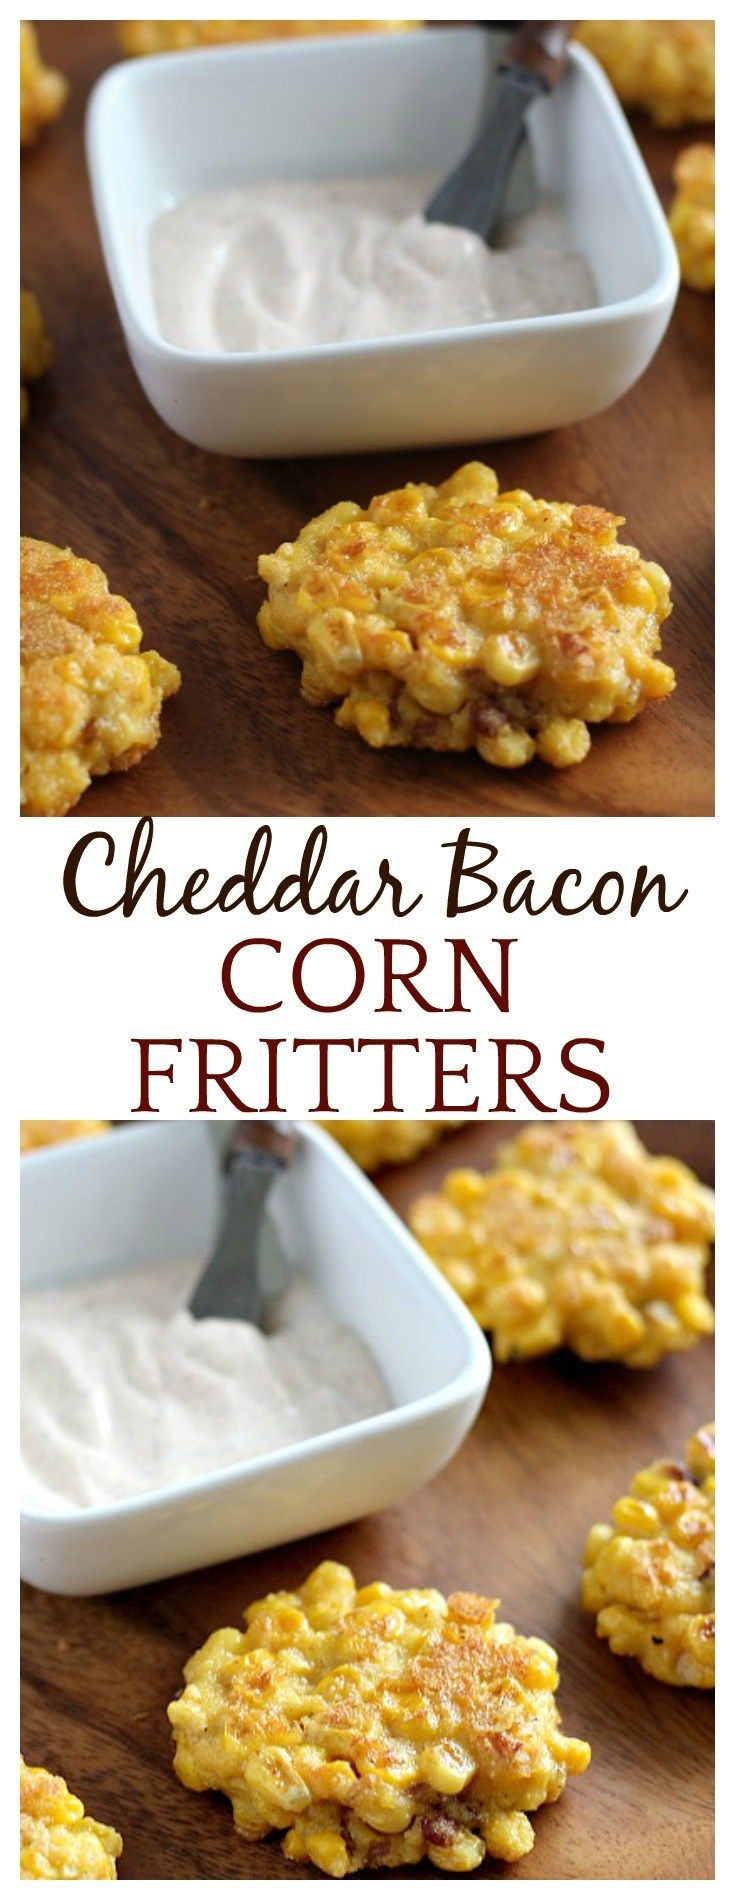 Summer is the perfect time of year to serve up these Cheddar Bacon Corn Fritters! They make switching up the same old, but still delicious corn-on-the cob a nice change. They are super easy to make and loaded with sweet and smokey flavors!